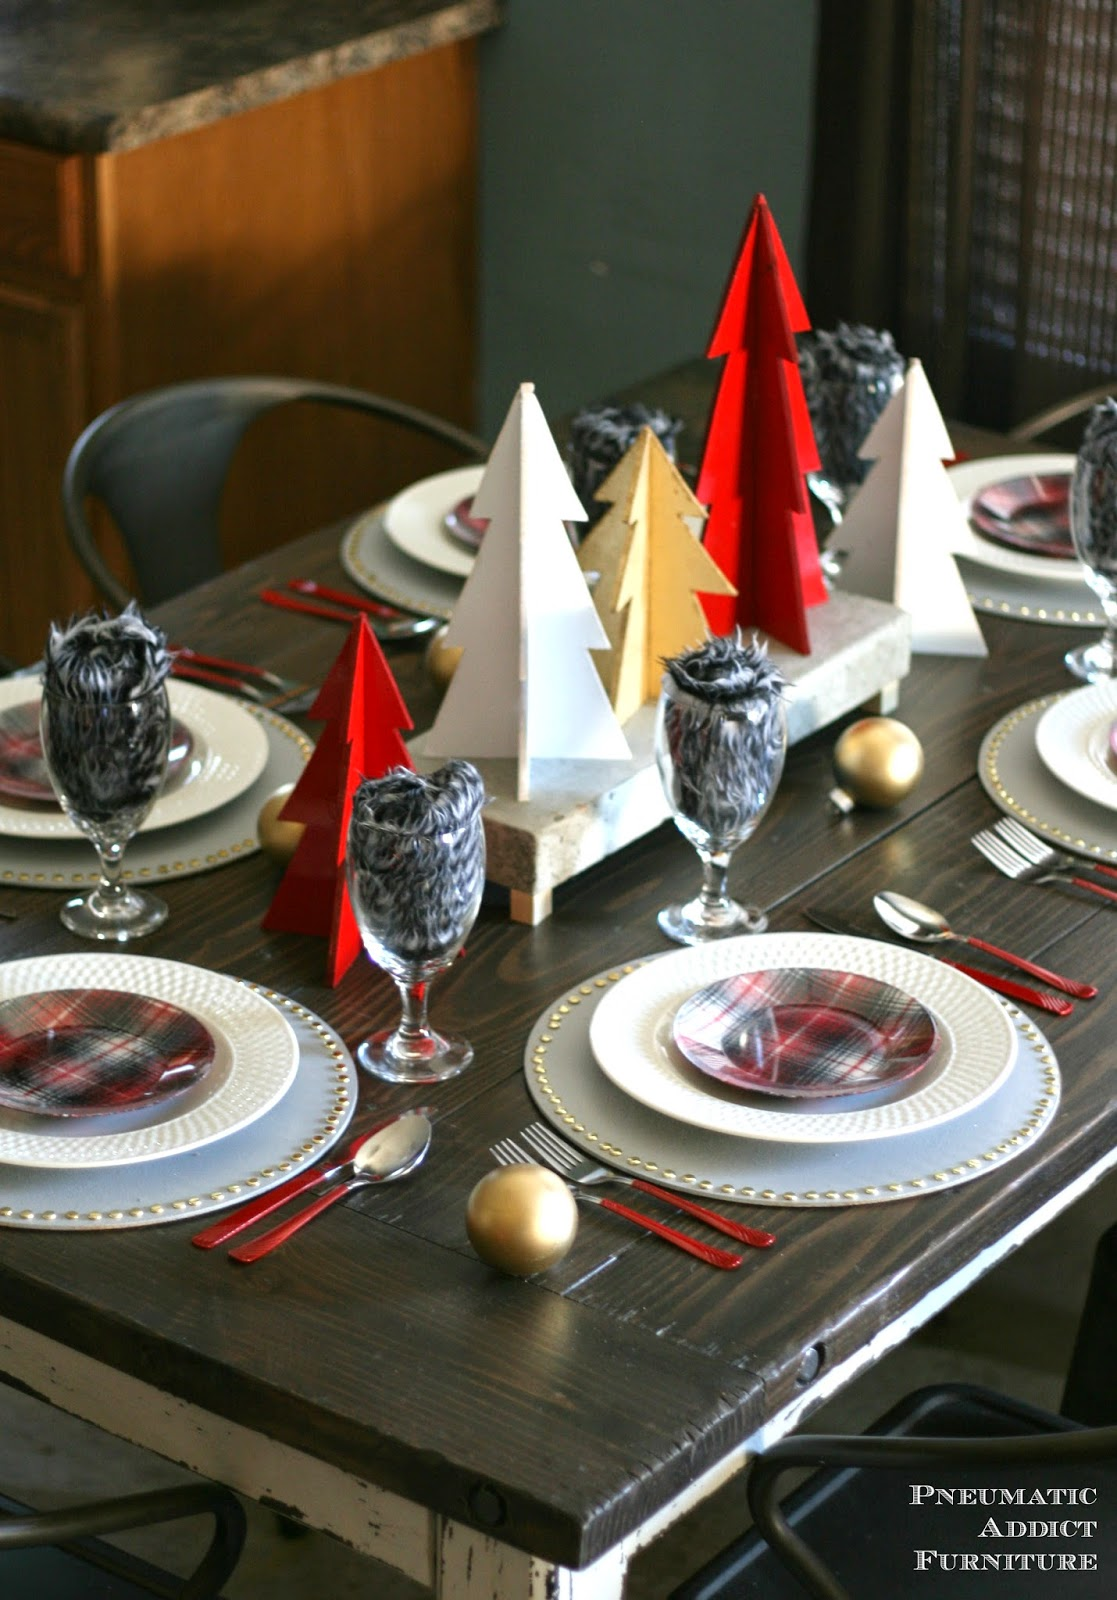 15-christmas-tablescapes-pneumatic